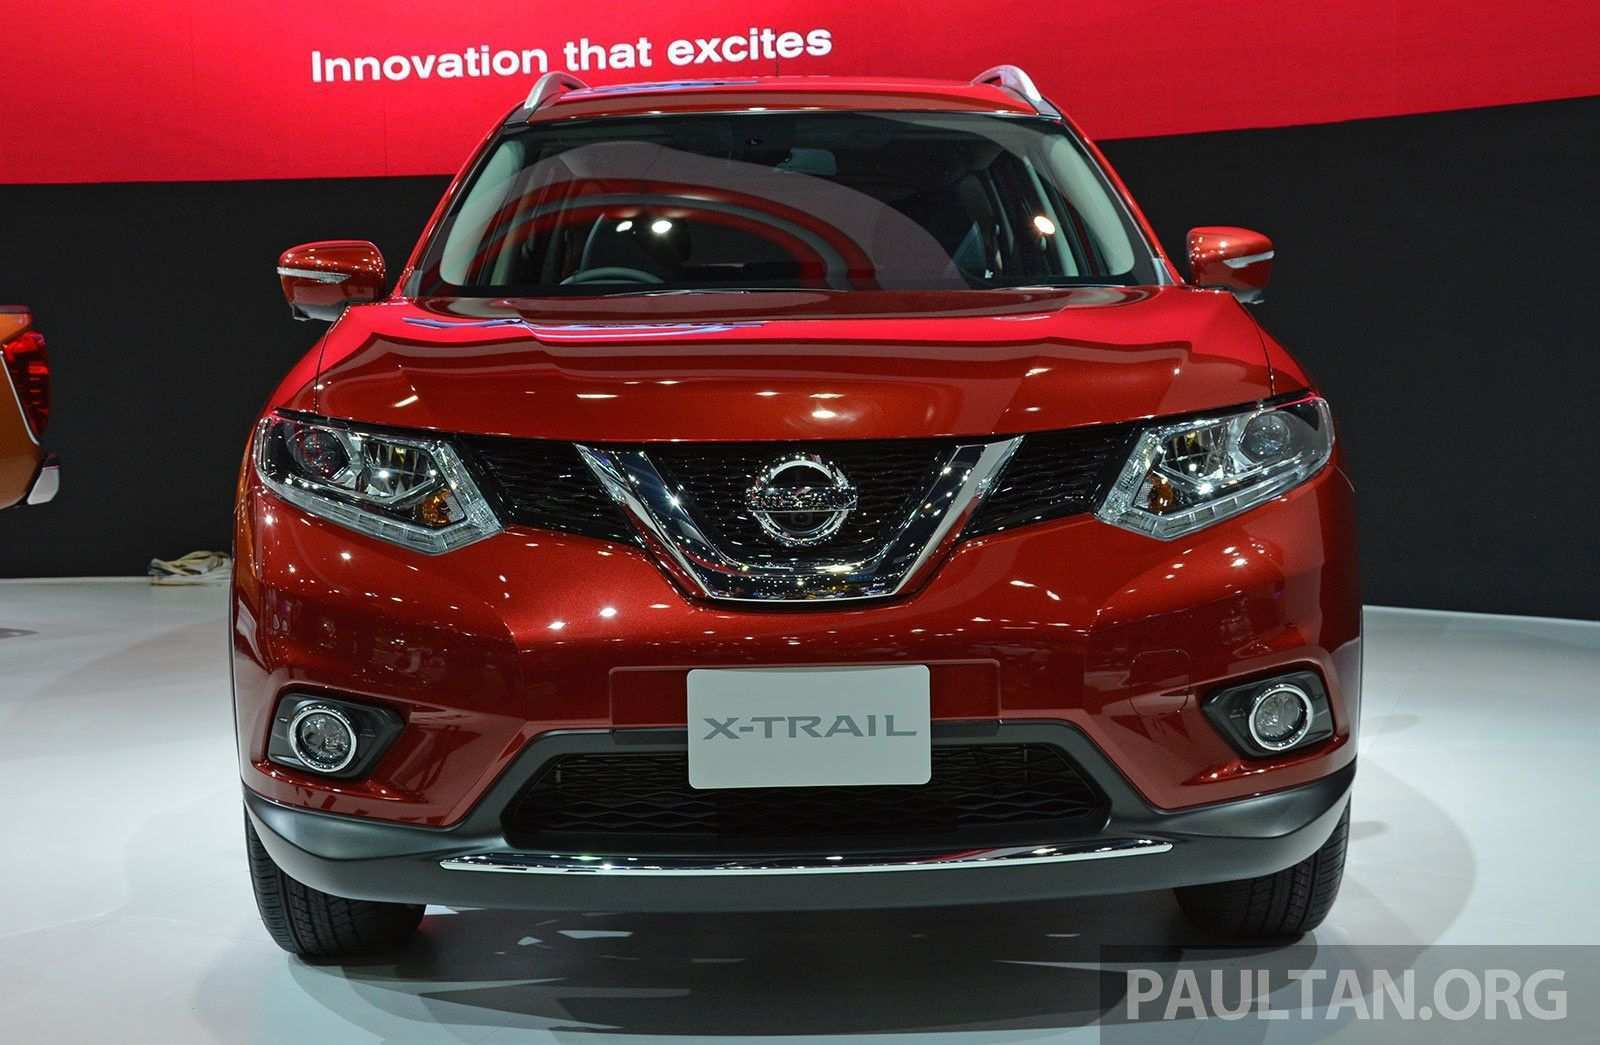 98 Gallery of Nissan X Trail 2020 Exterior Pricing with Nissan X Trail 2020 Exterior